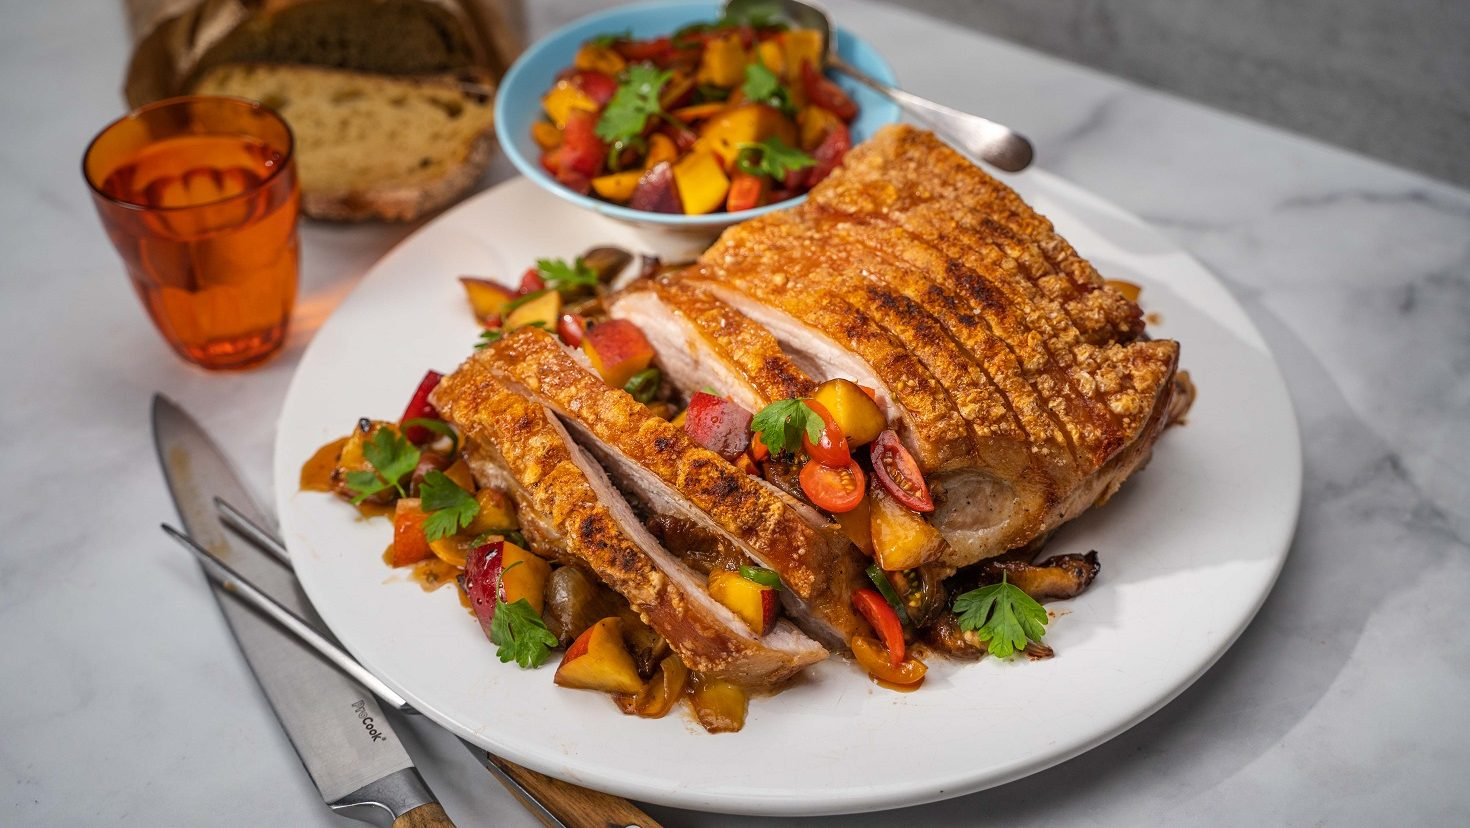 A roast pork topped with colourful fruit salsa, and a small bowl of salsa in the back